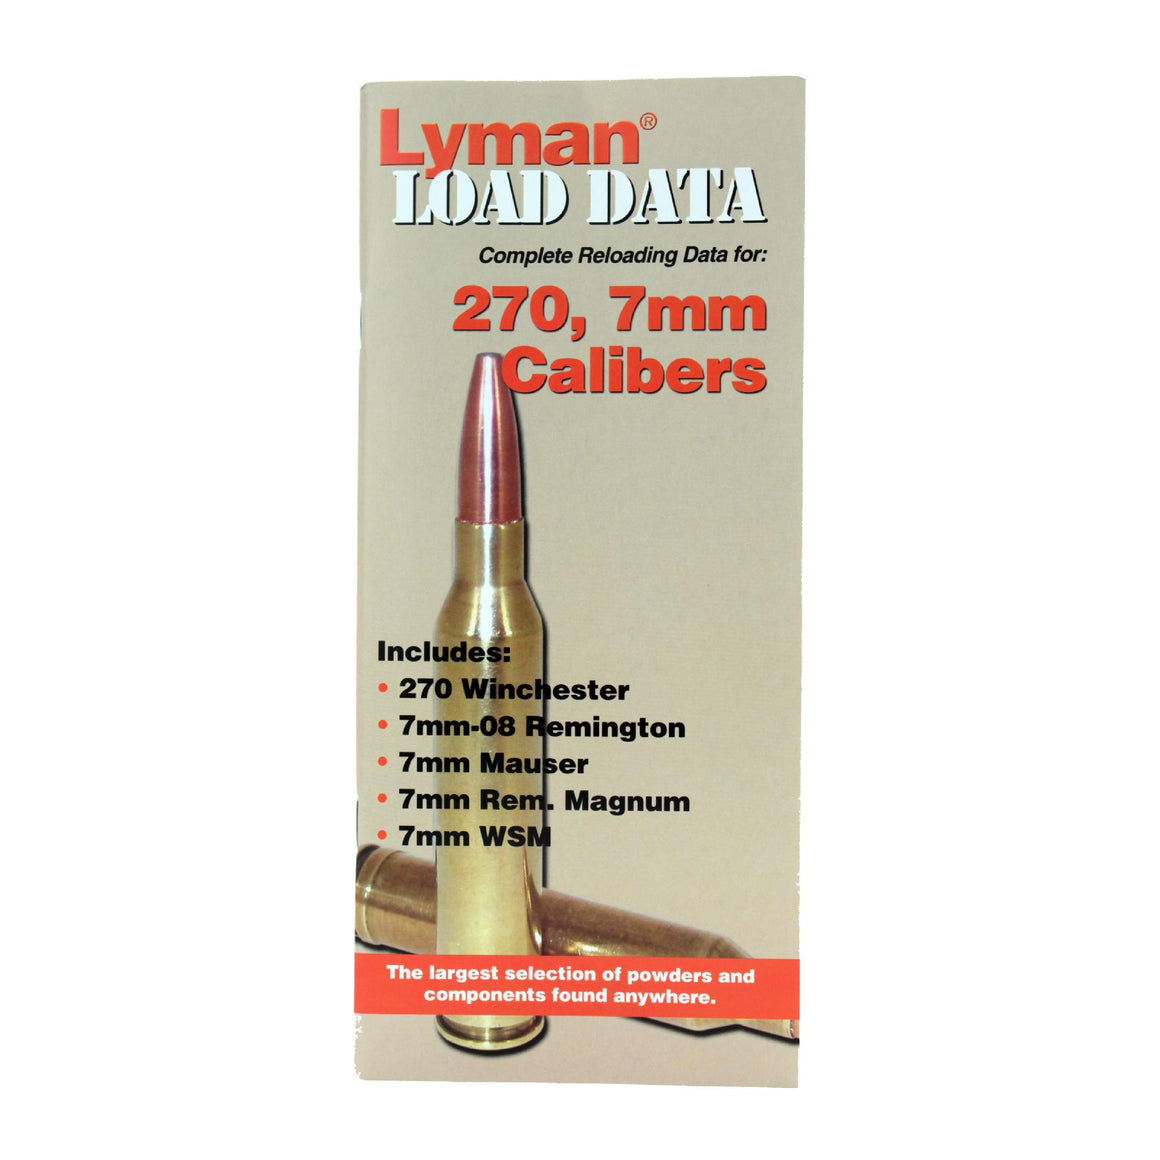 Load Data Book - 270, 7mm